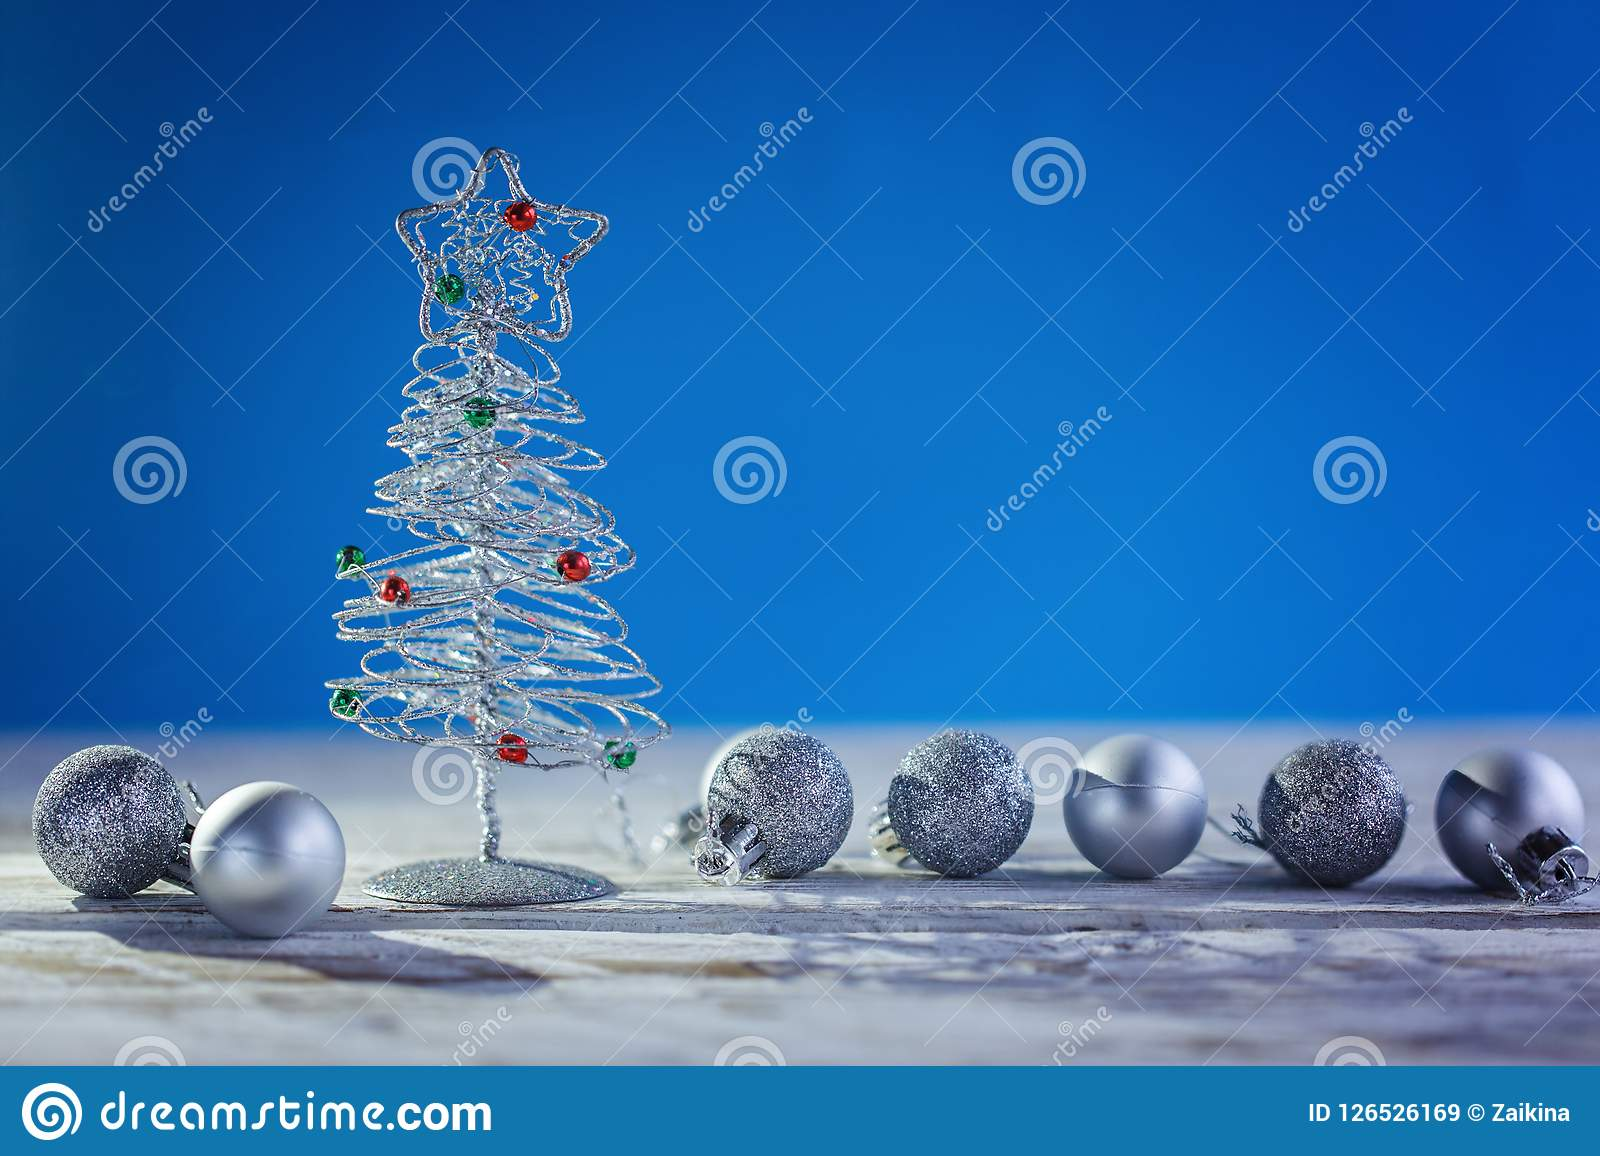 Christmas background with decorative silver Christmas tree and ball on blue background.